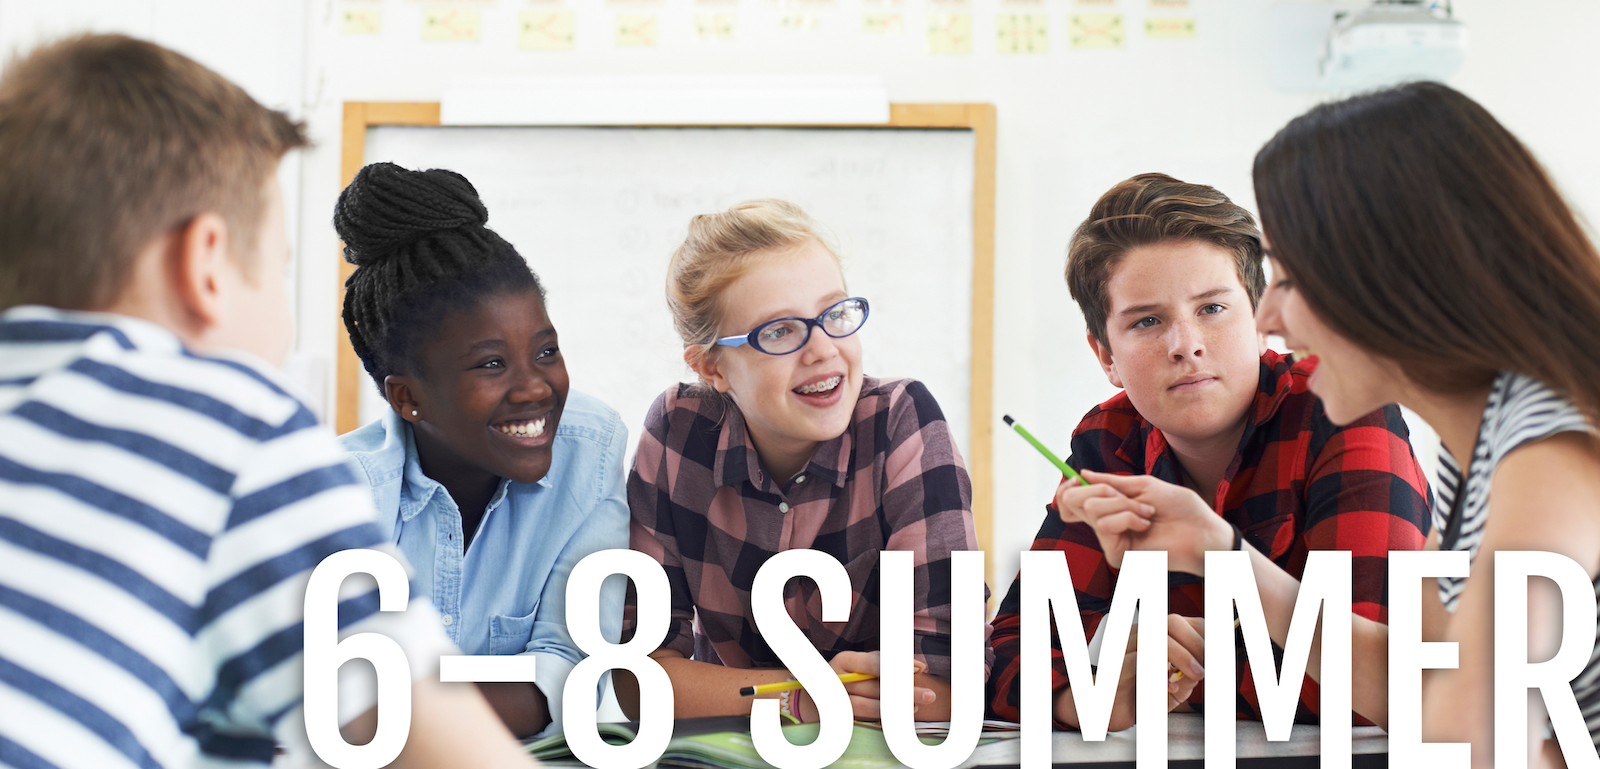 6-8 Summer Learning